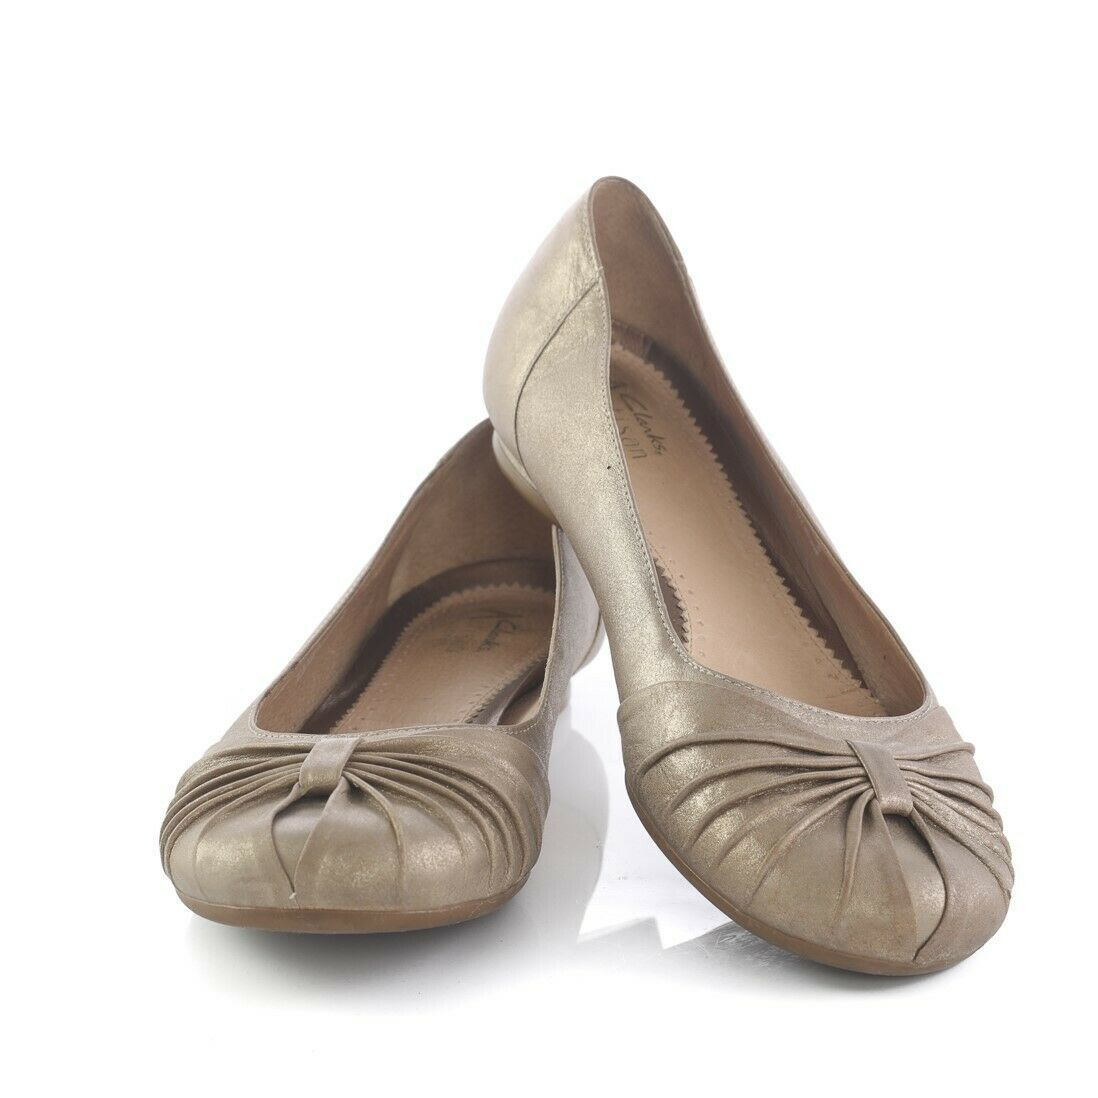 Primary image for Clarks Artisan Gold Leather Ballet Flats Comfort Shoes Womens 9 M SN 74588